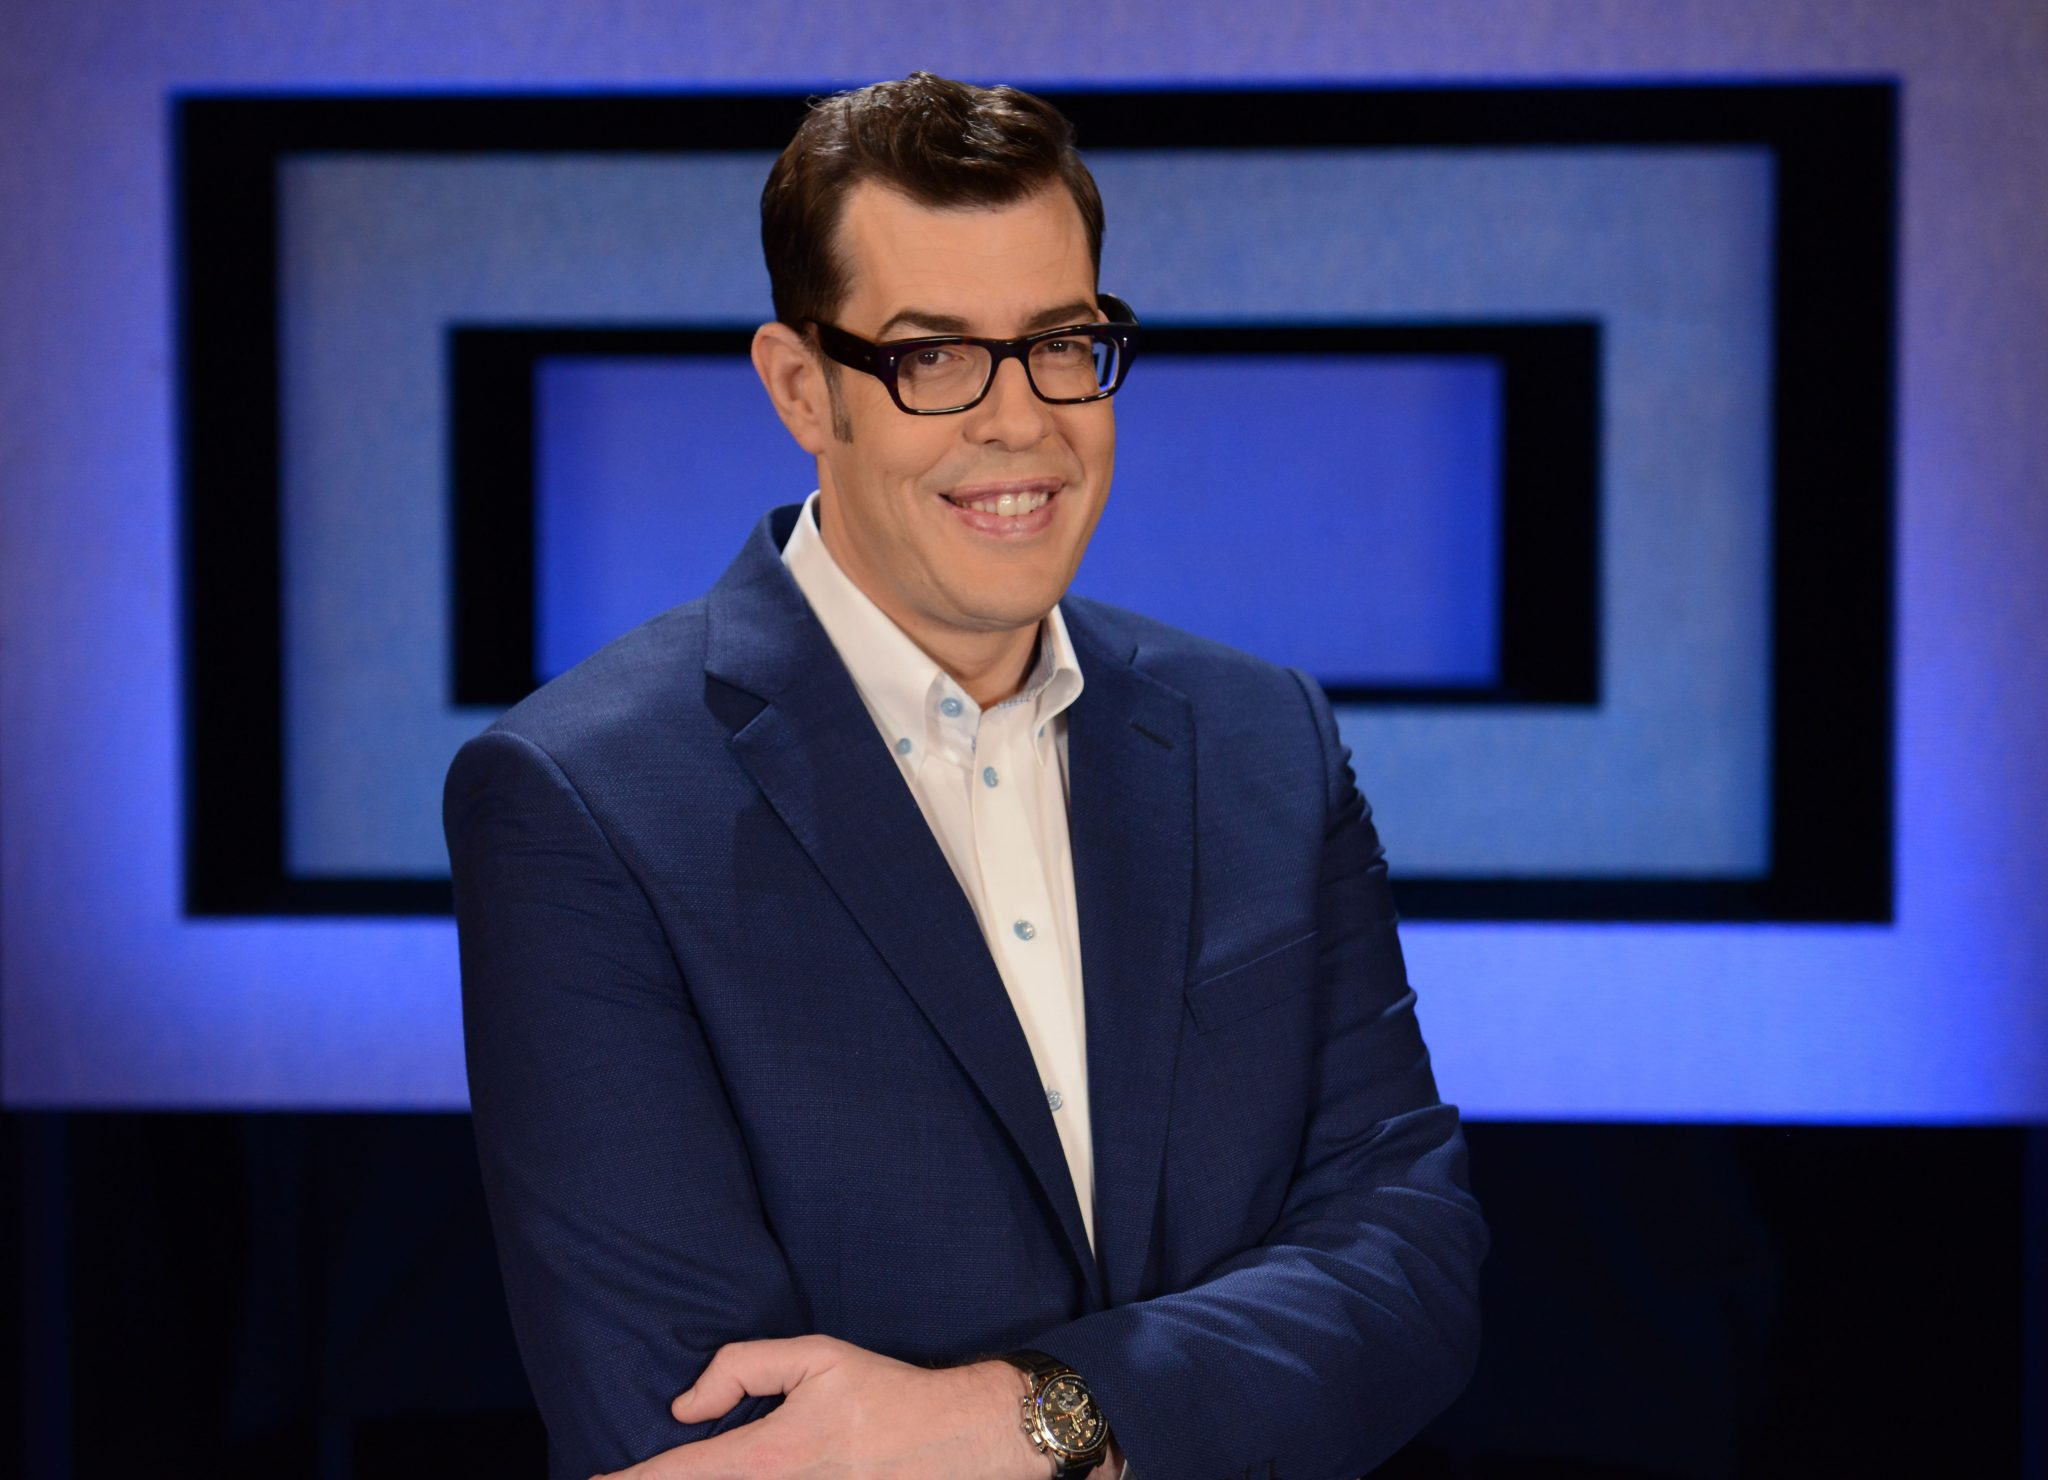 Richard Osman on Broadcasting, Bright Kids, and Biscuits